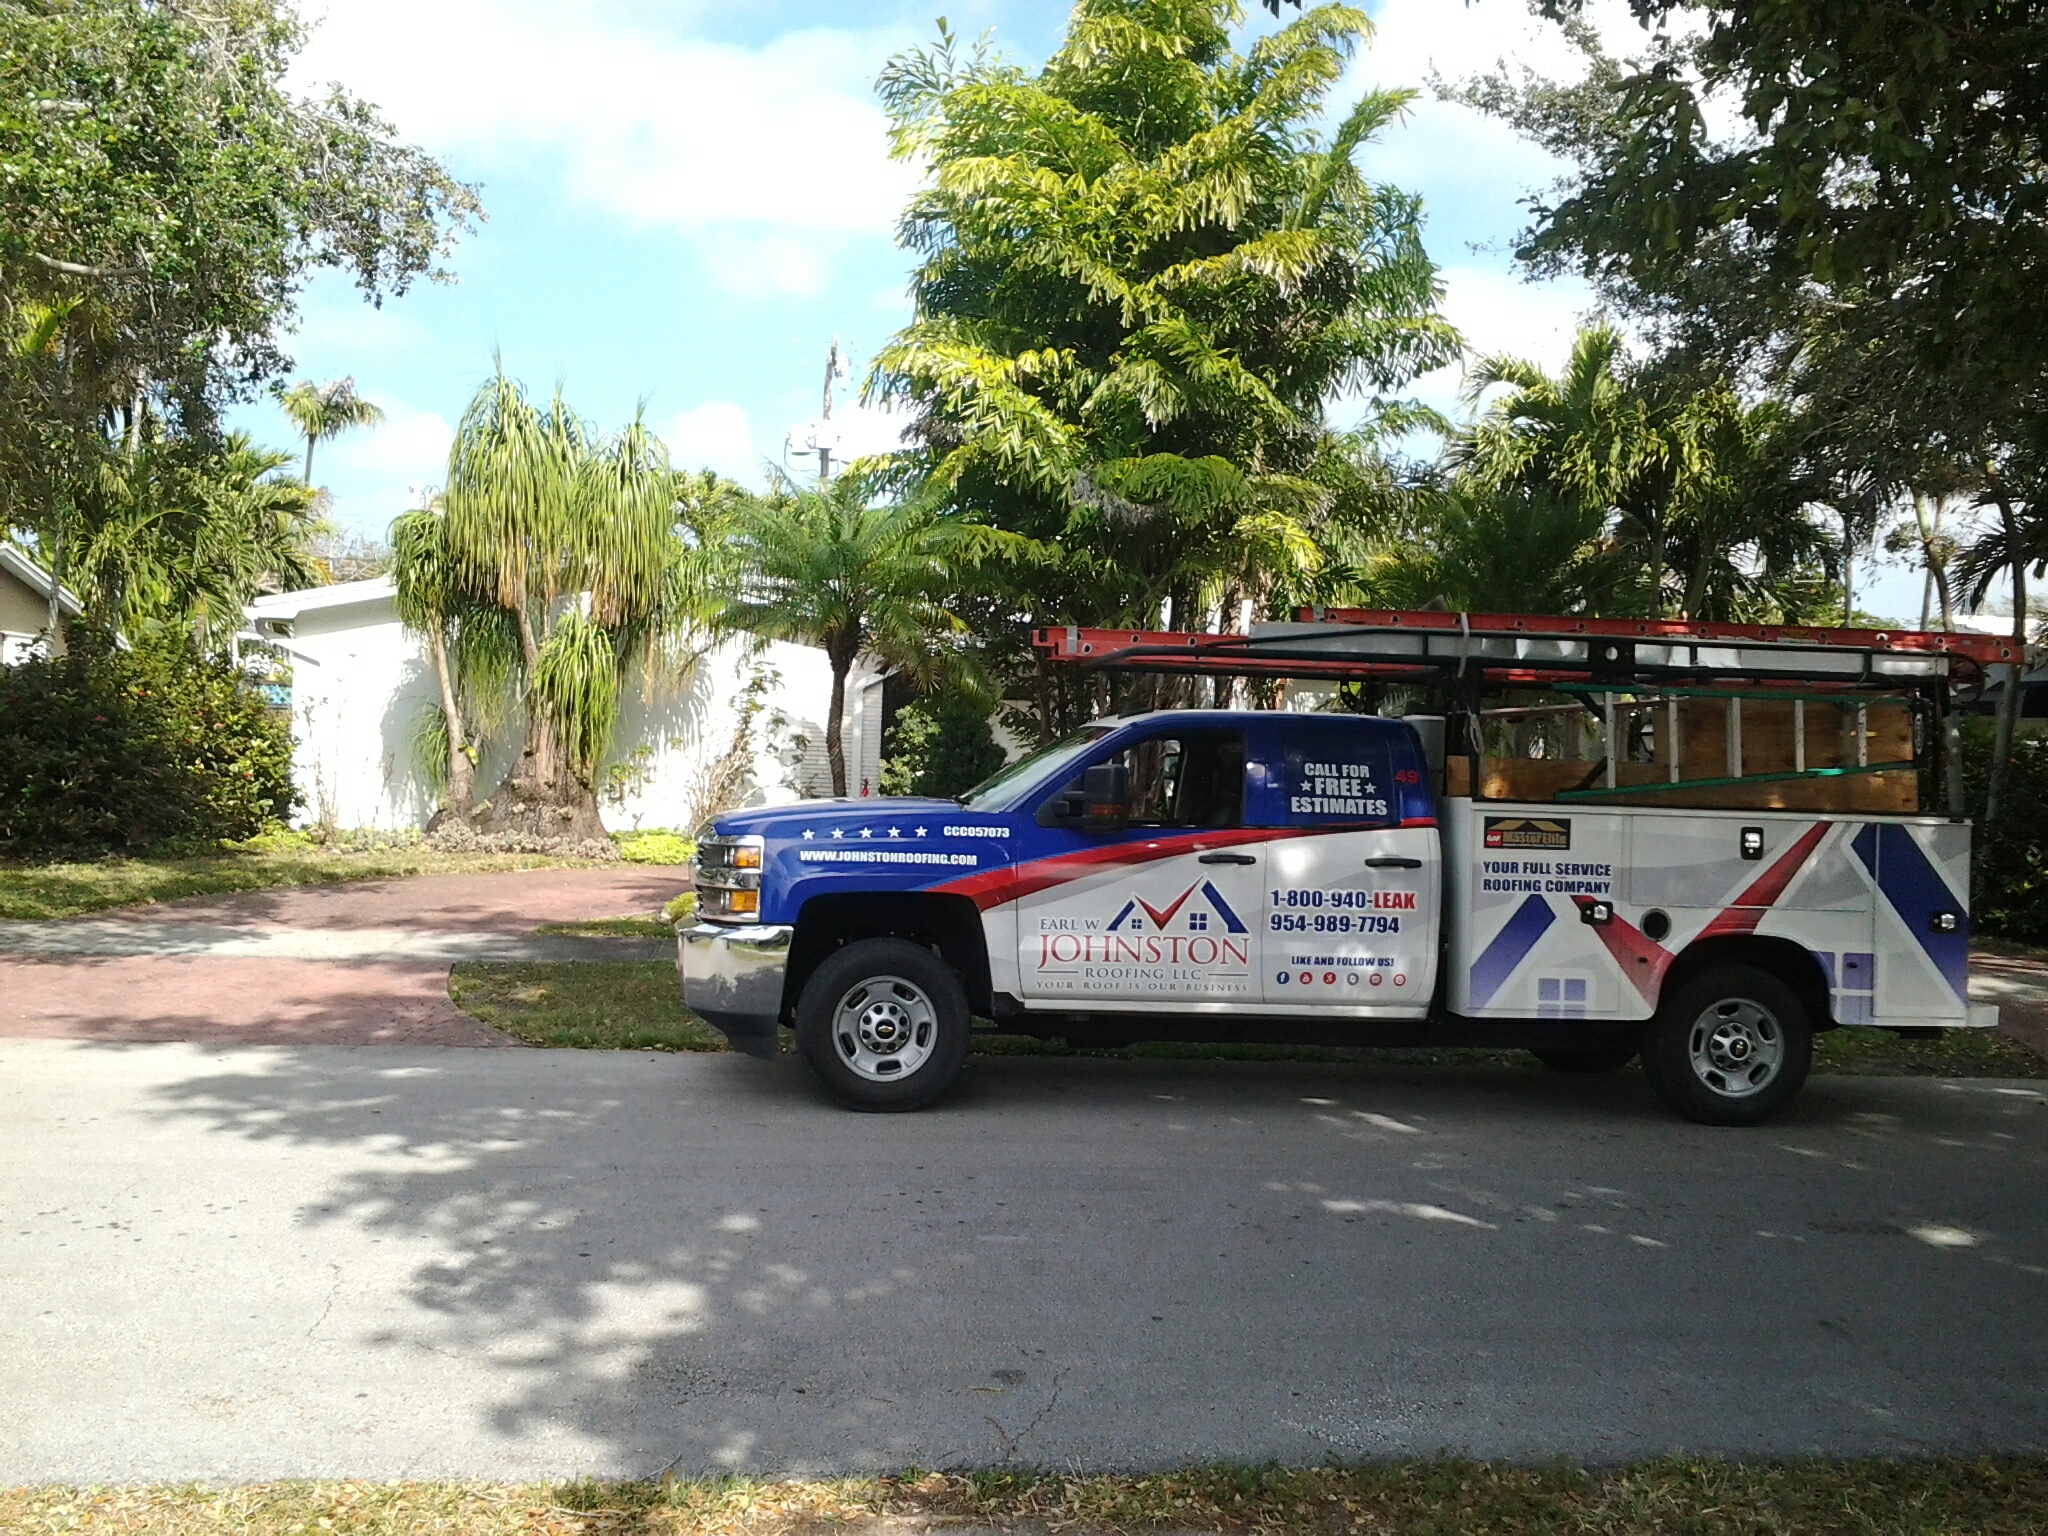 Bal Harbour, FL - Shingles roof repair in the city of miami fl this repair is being done by Earl w Johnston roofing company Jos? end Duane are you repair technicians